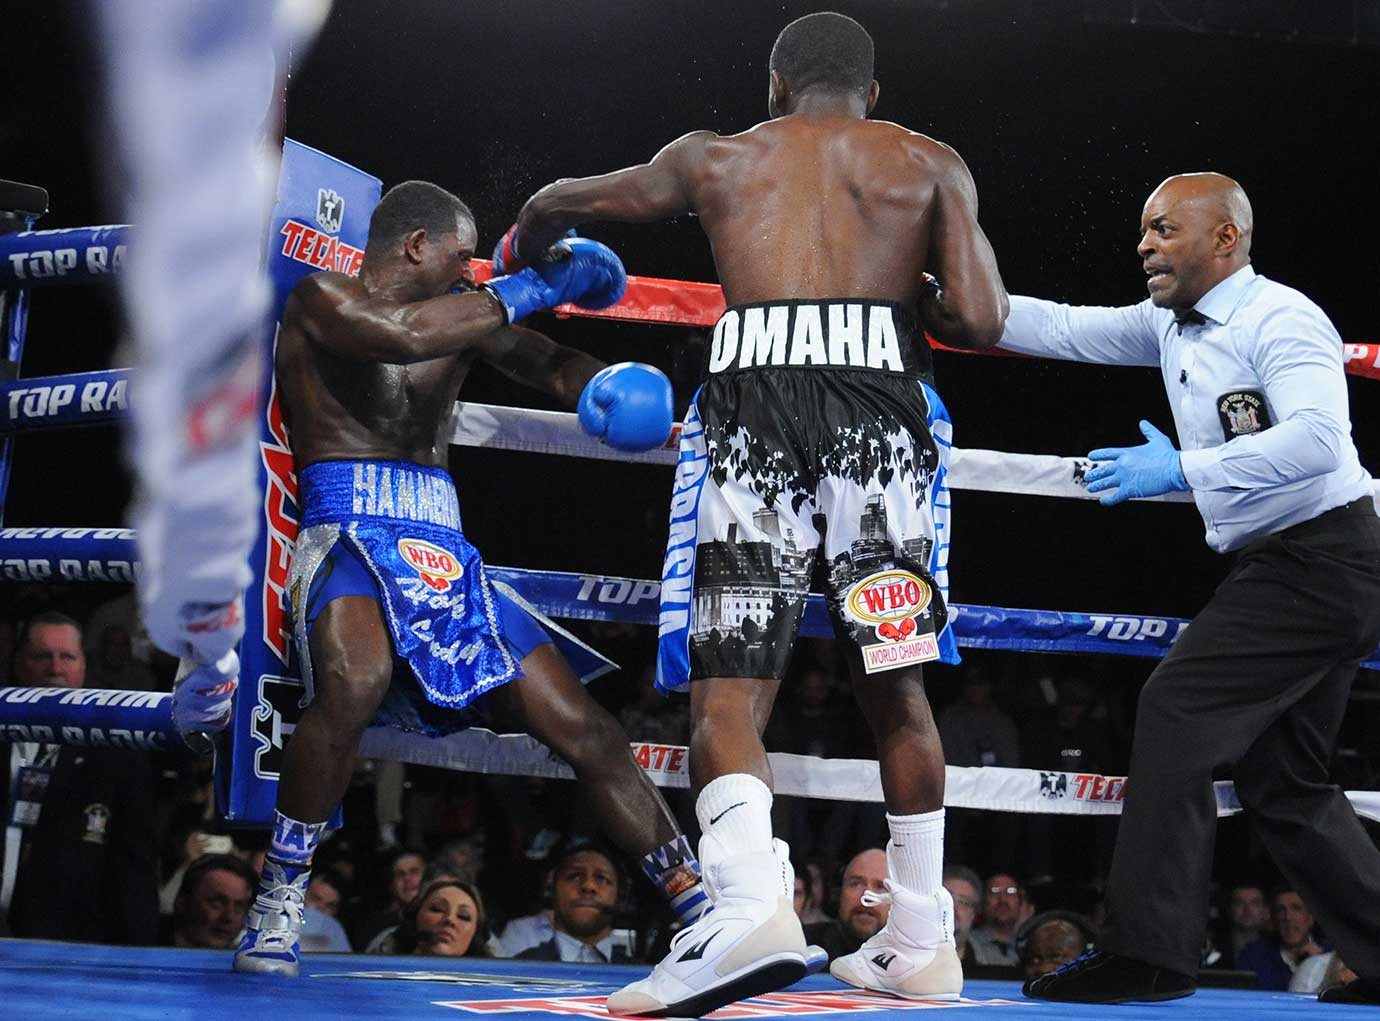 Terrance Crawford drills Henry Lundy as the ring official moves in to stop the action.